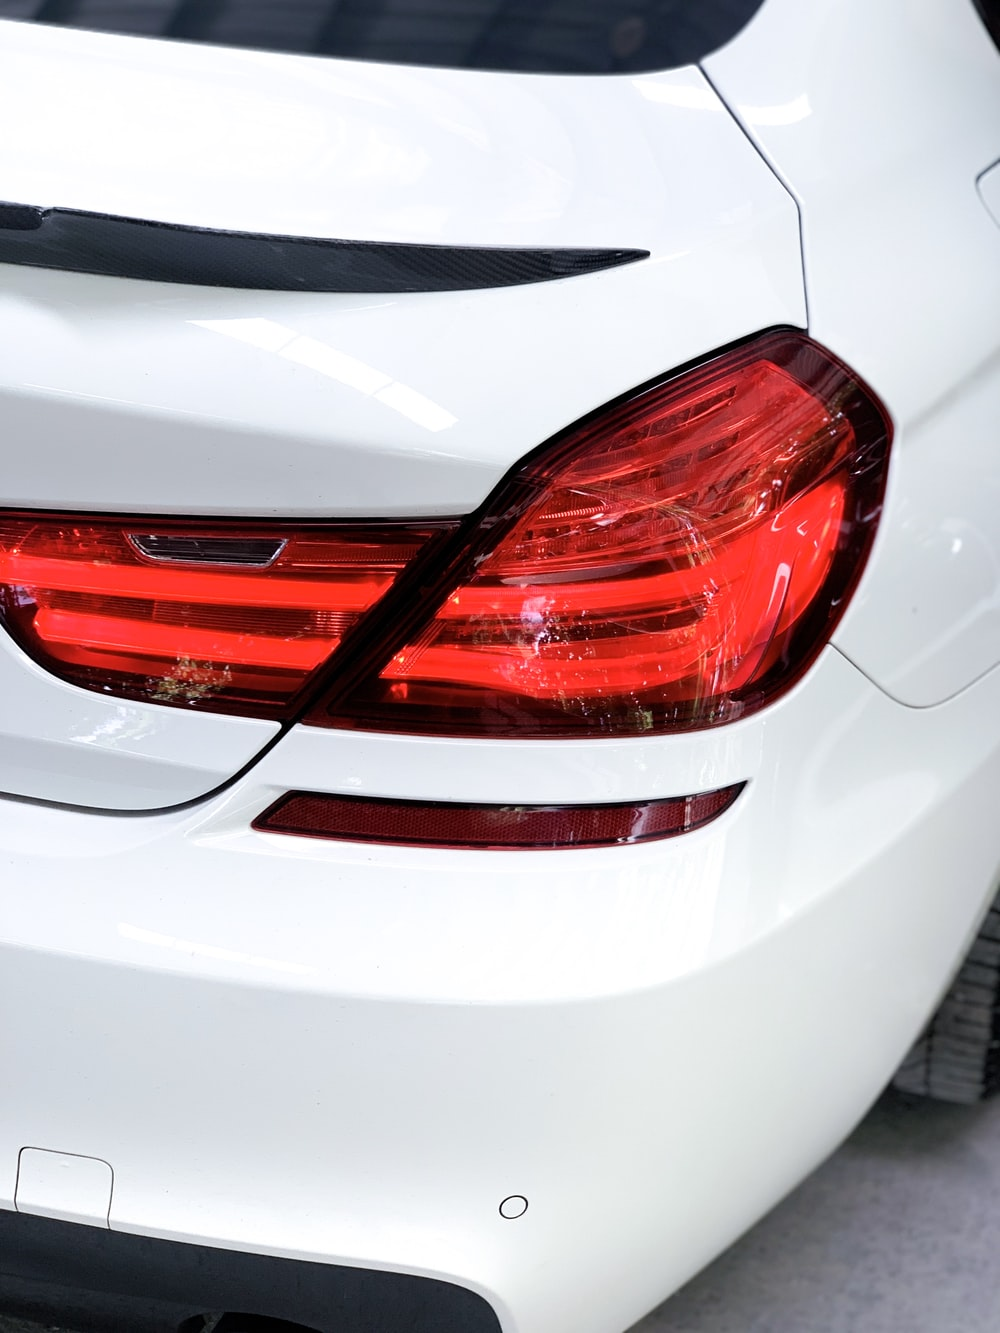 back view of white car